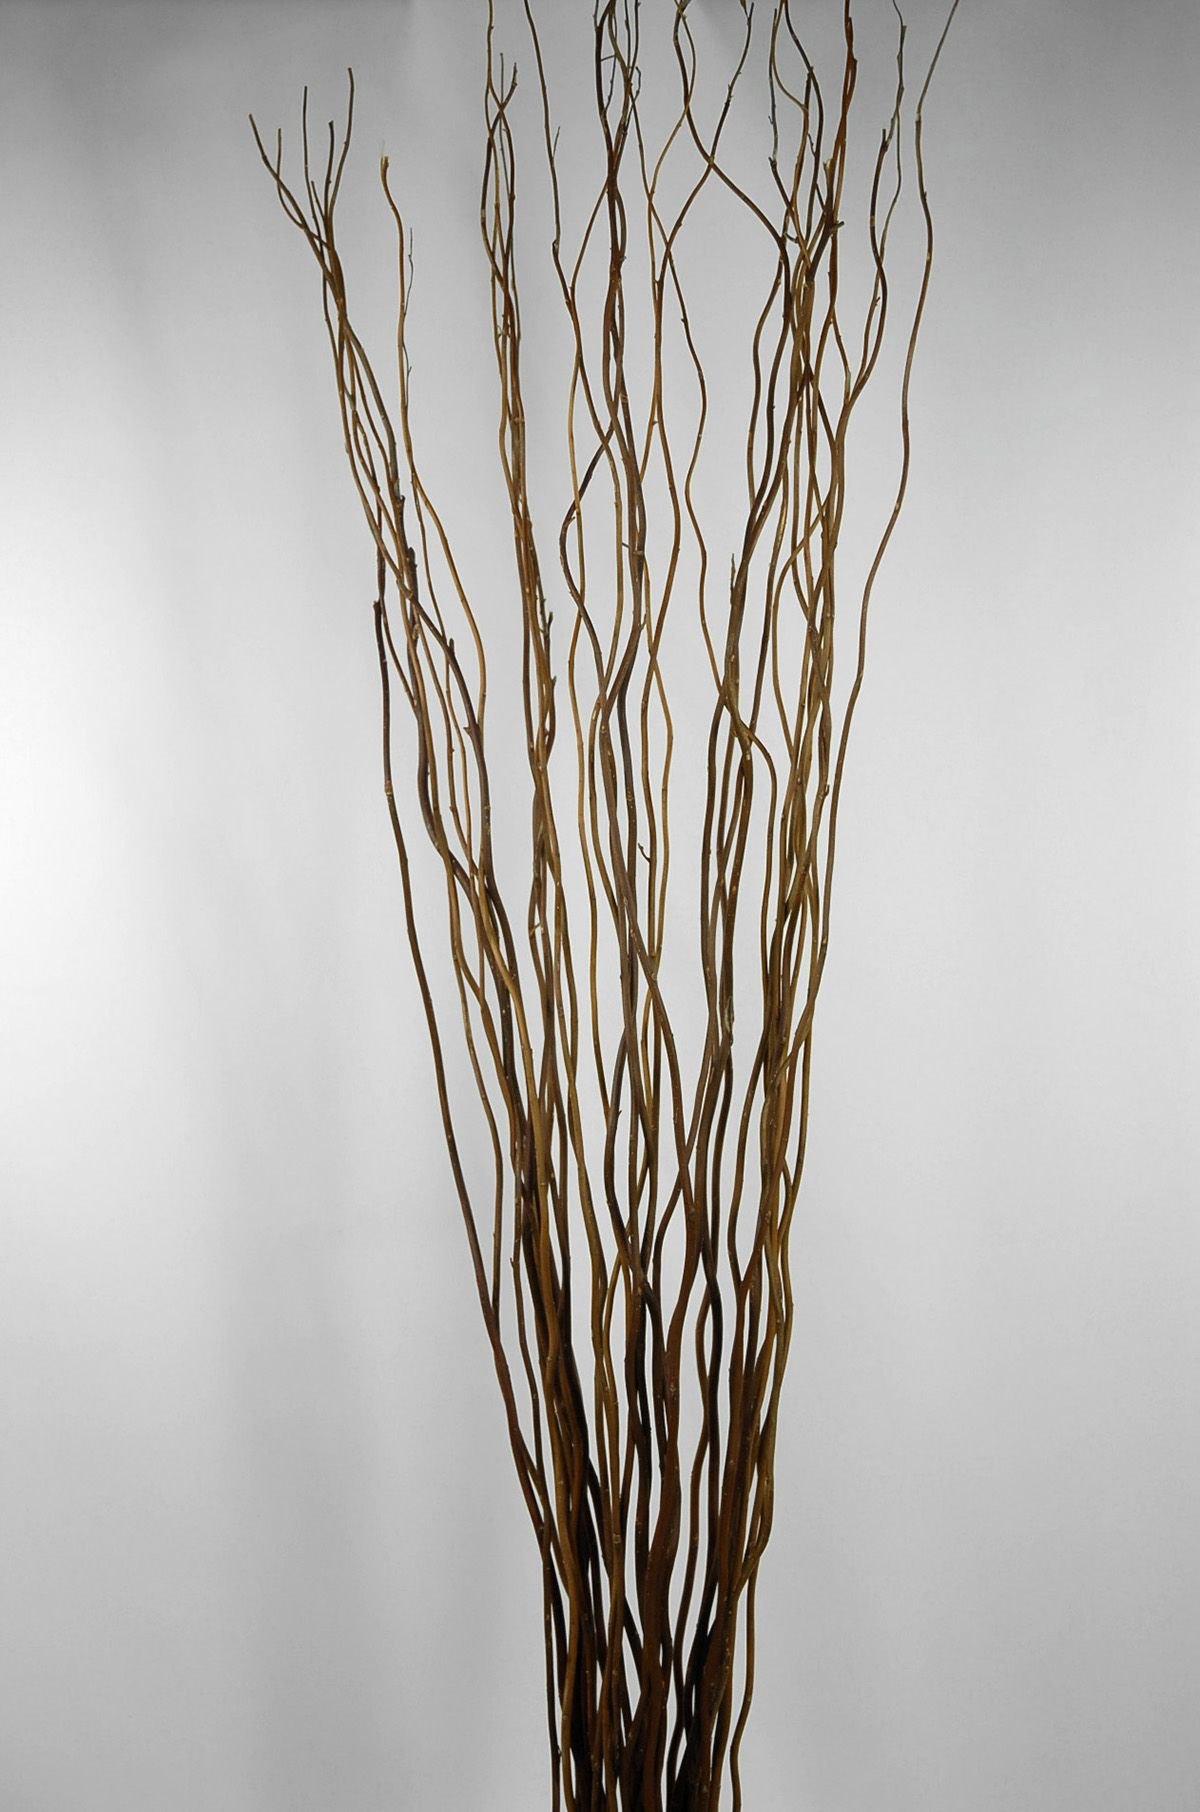 Natural Curly Willow Branches 26-30in 11 branches | Willow branches ...